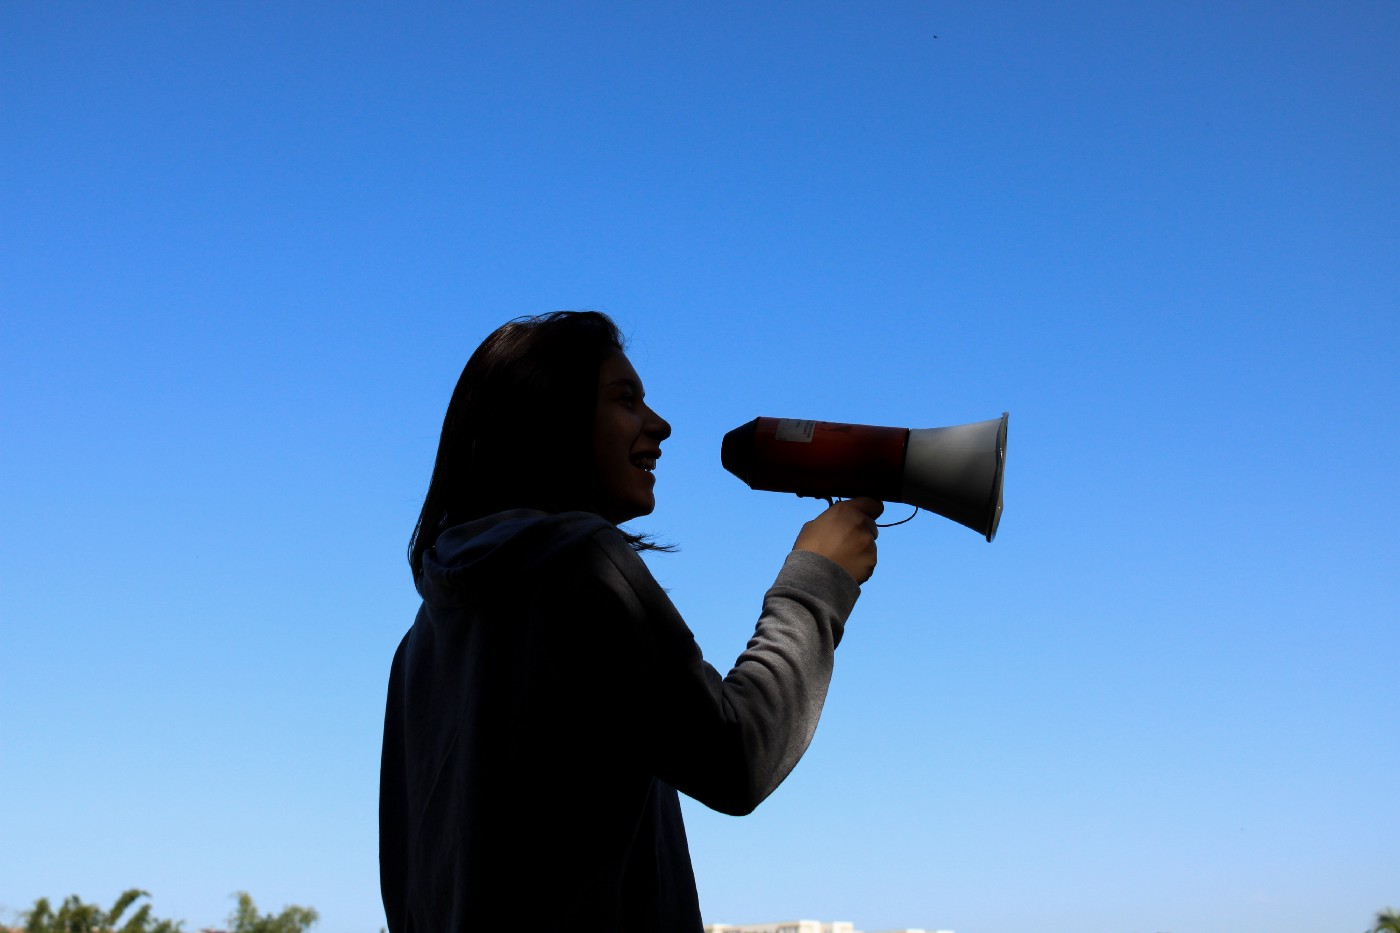 Person with a bullhorn.